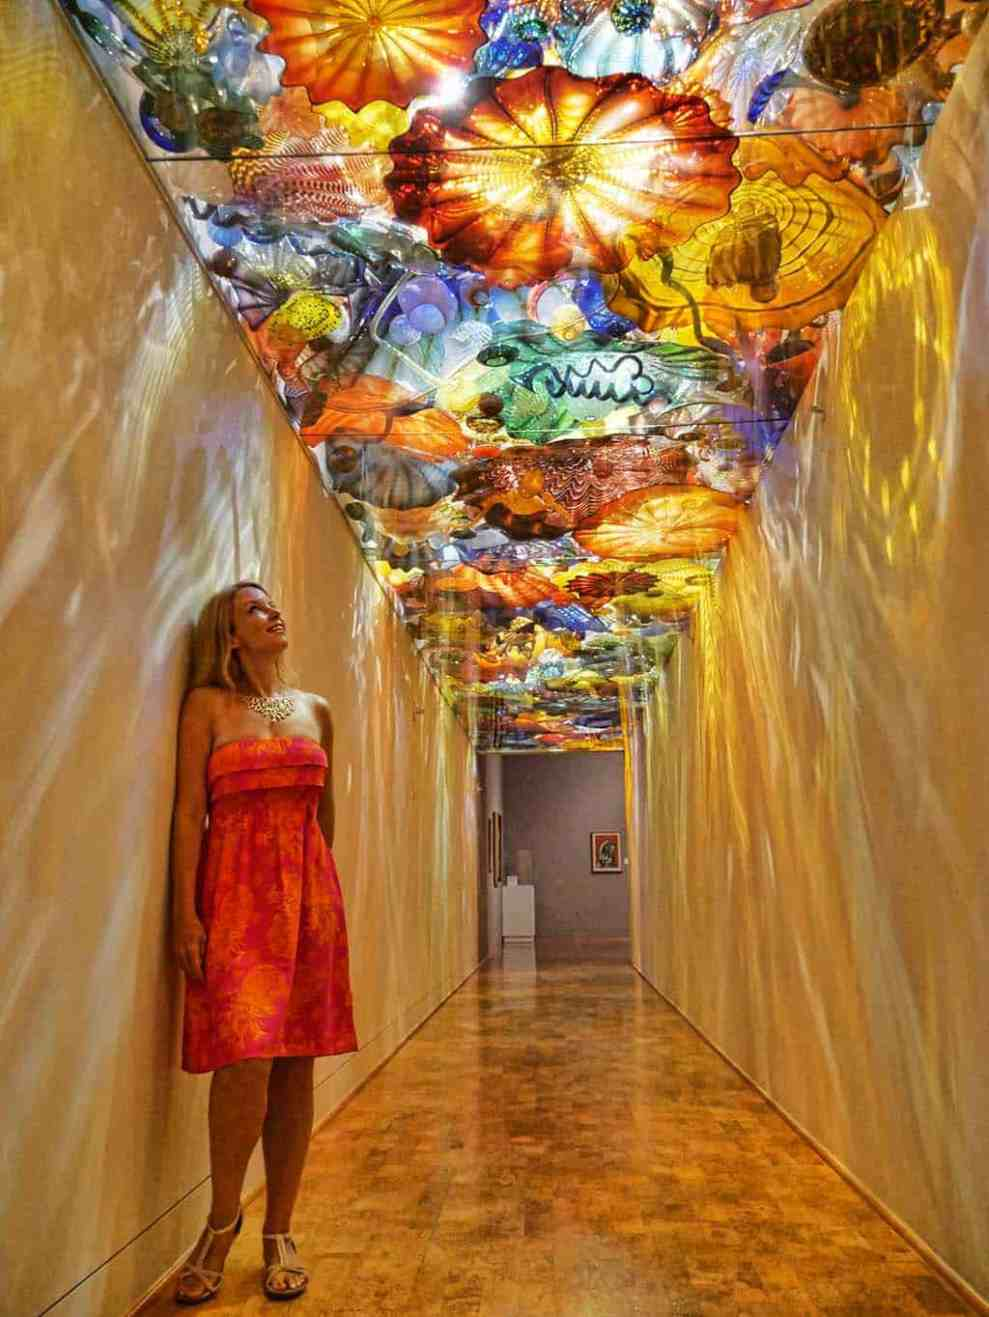 dale-chihuly-naples-corridor